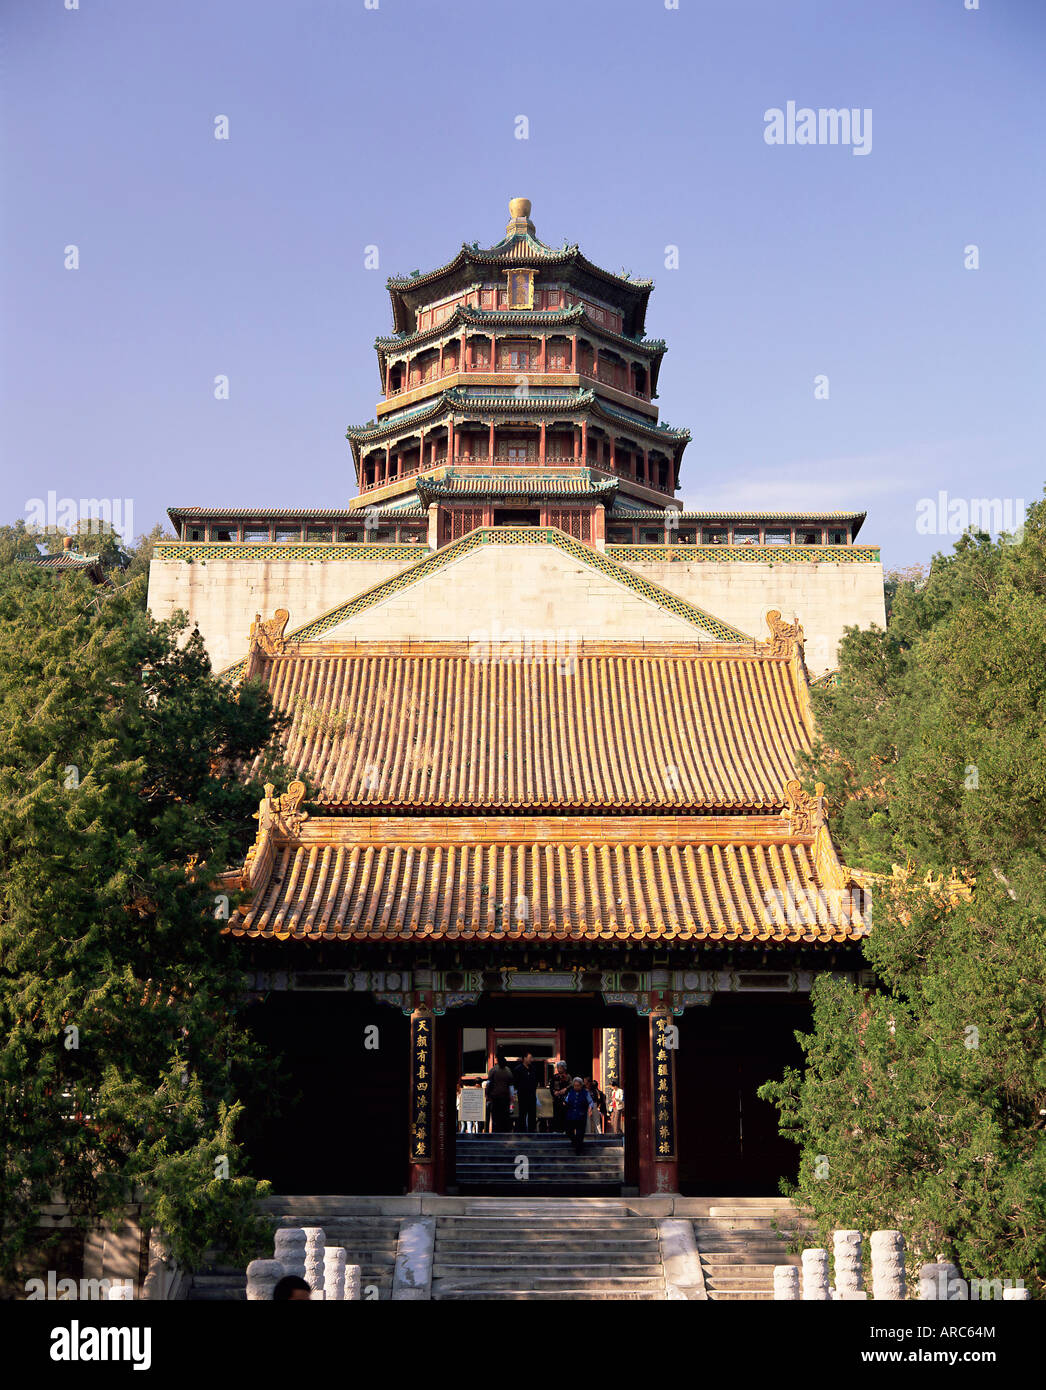 Qing architecture, Huihai Si, Sea of Wisdom temple, the Summer Palace, Beijing, China, Asia Stock Photo